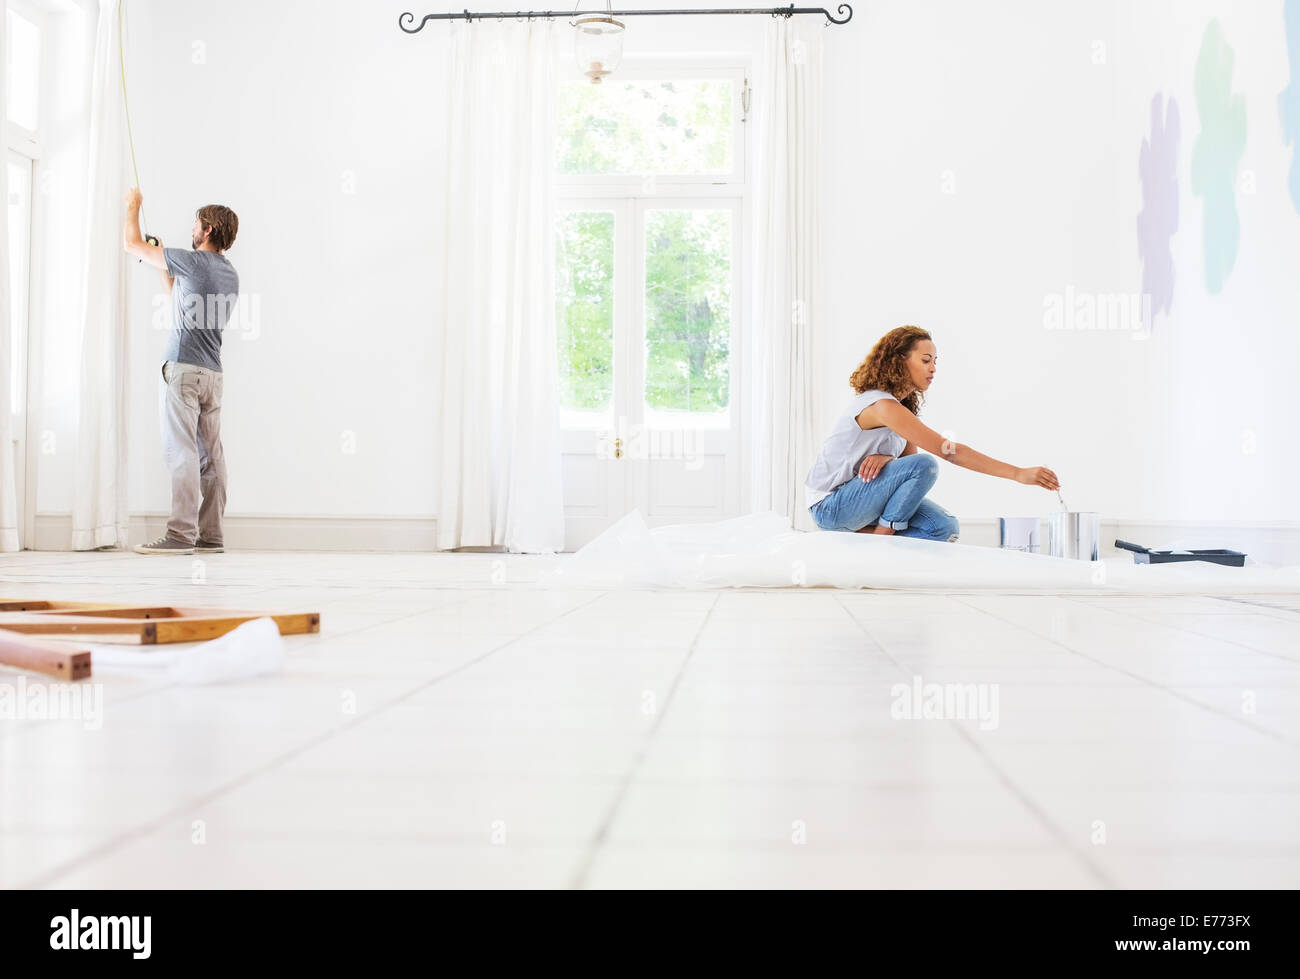 Couple fixing up new home - Stock Image